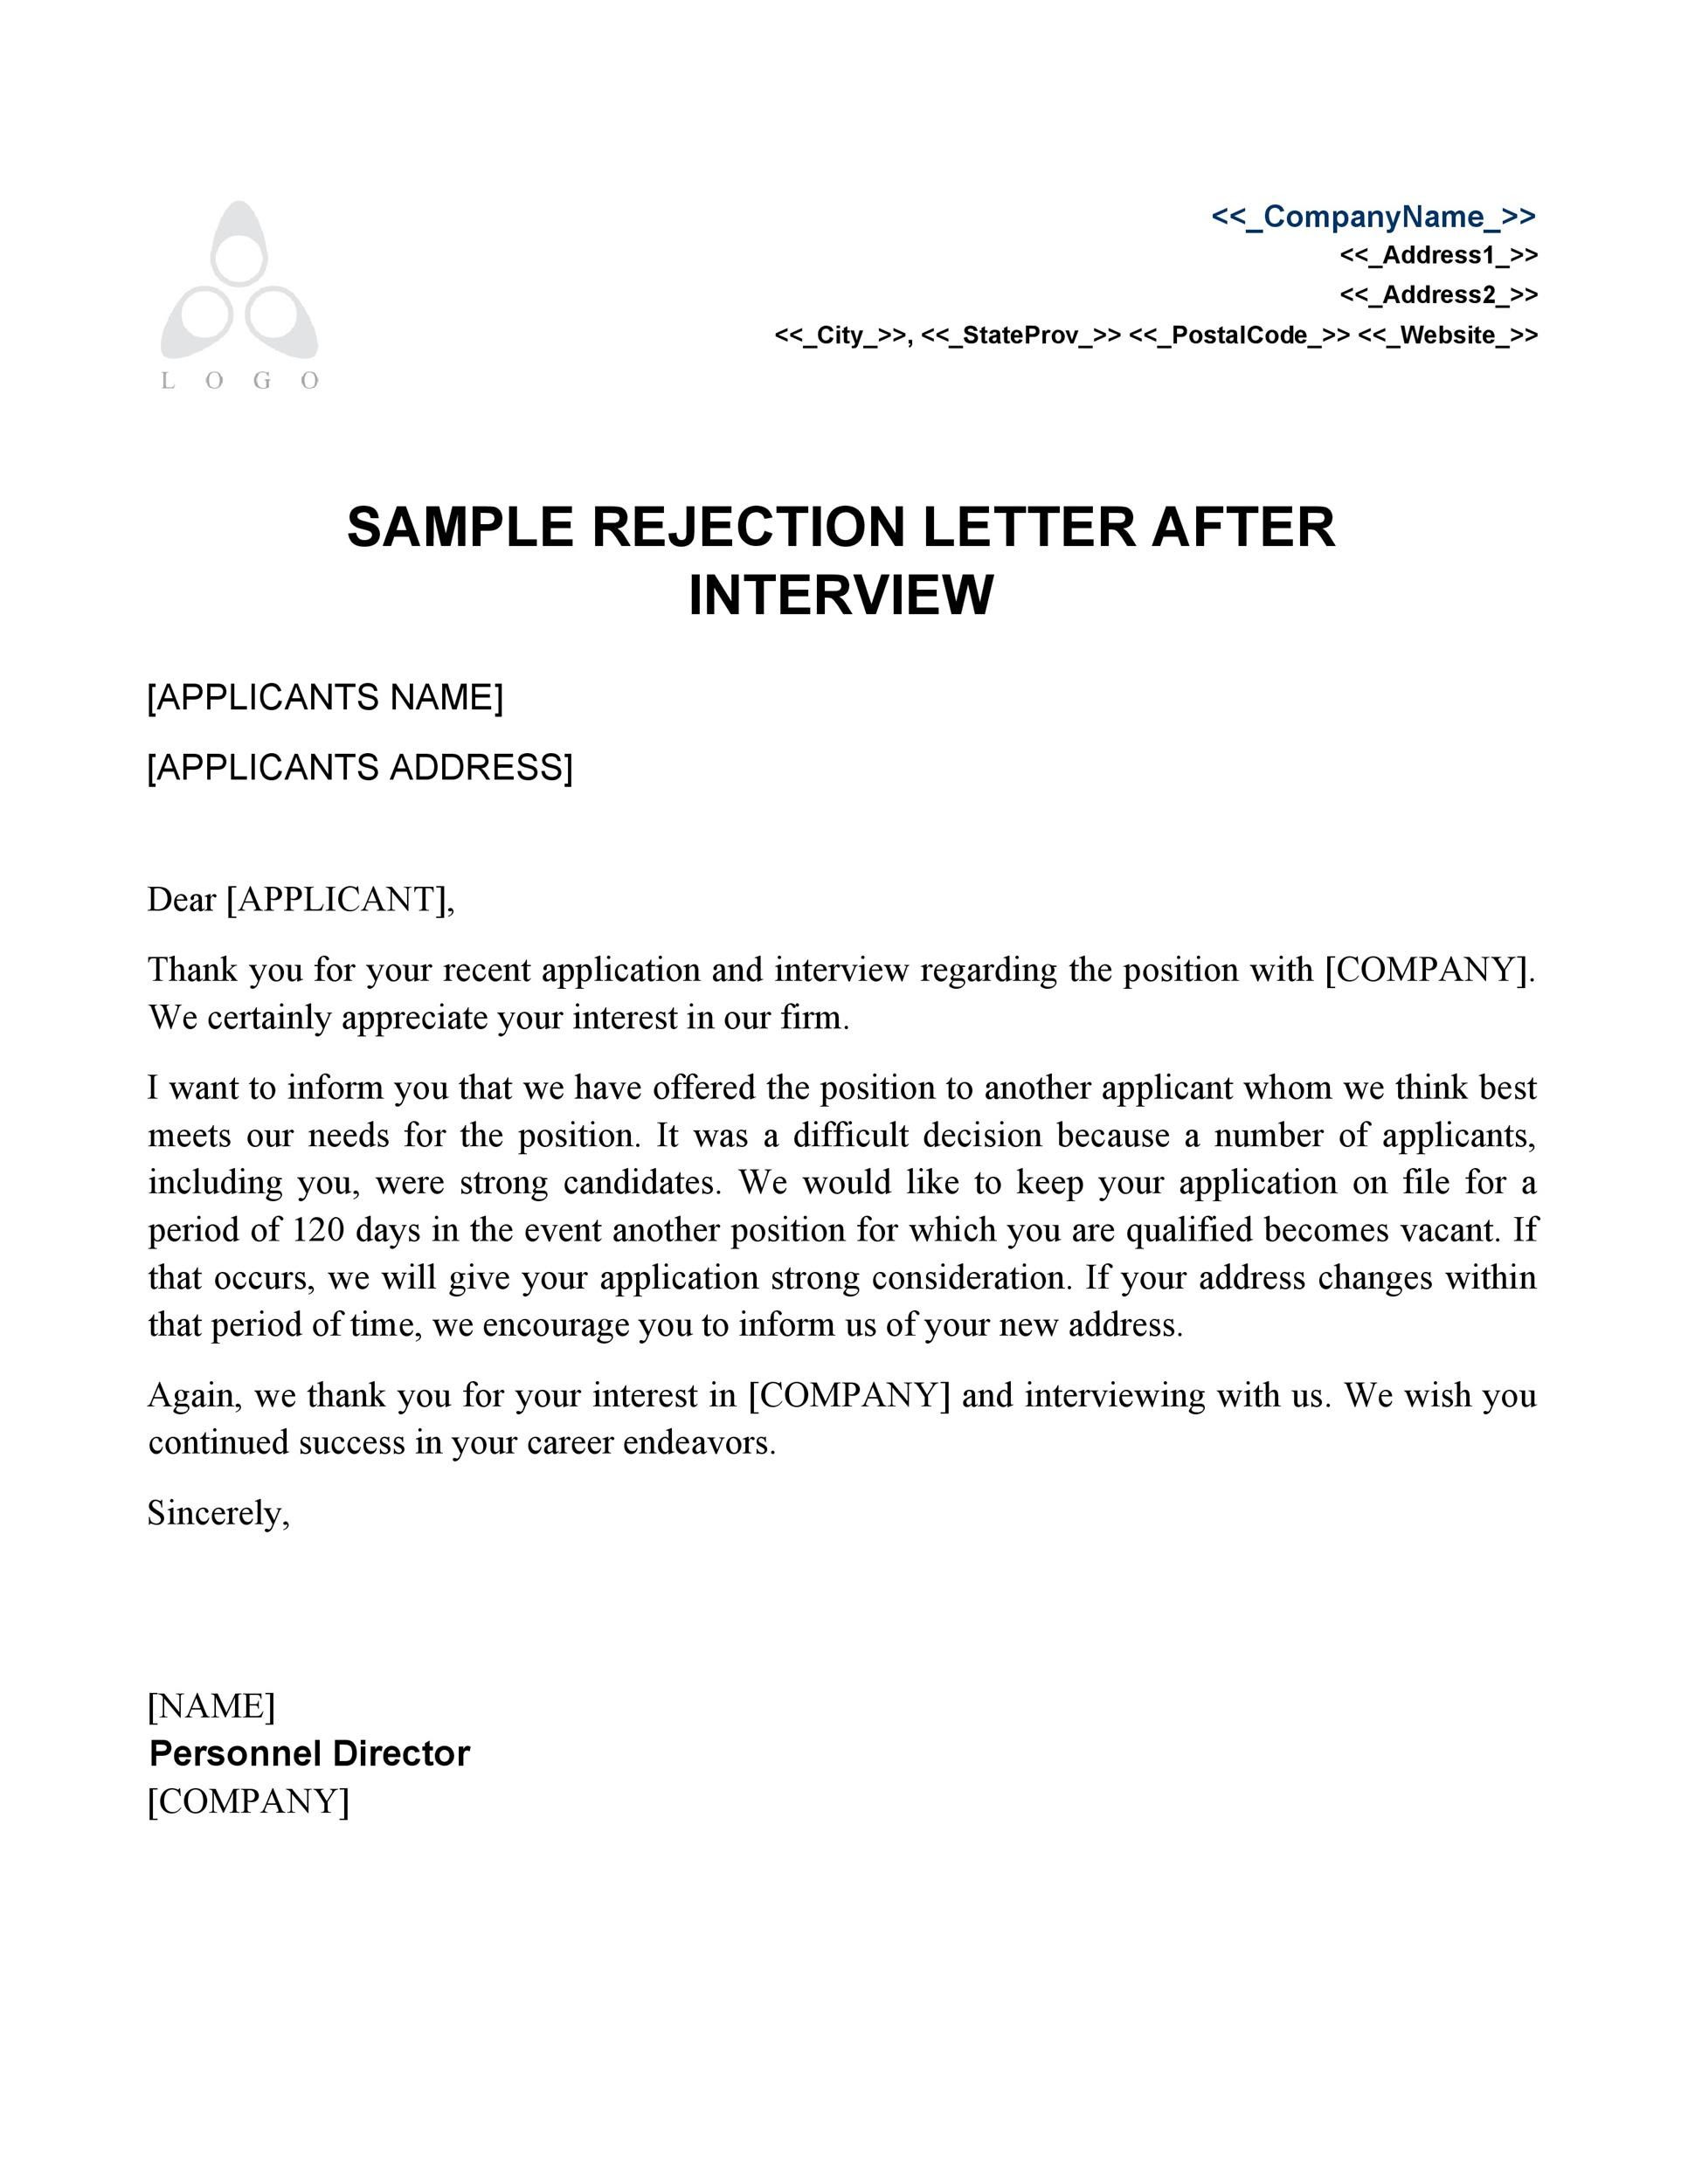 Sample Decline Letter To Applicant | Letter Template